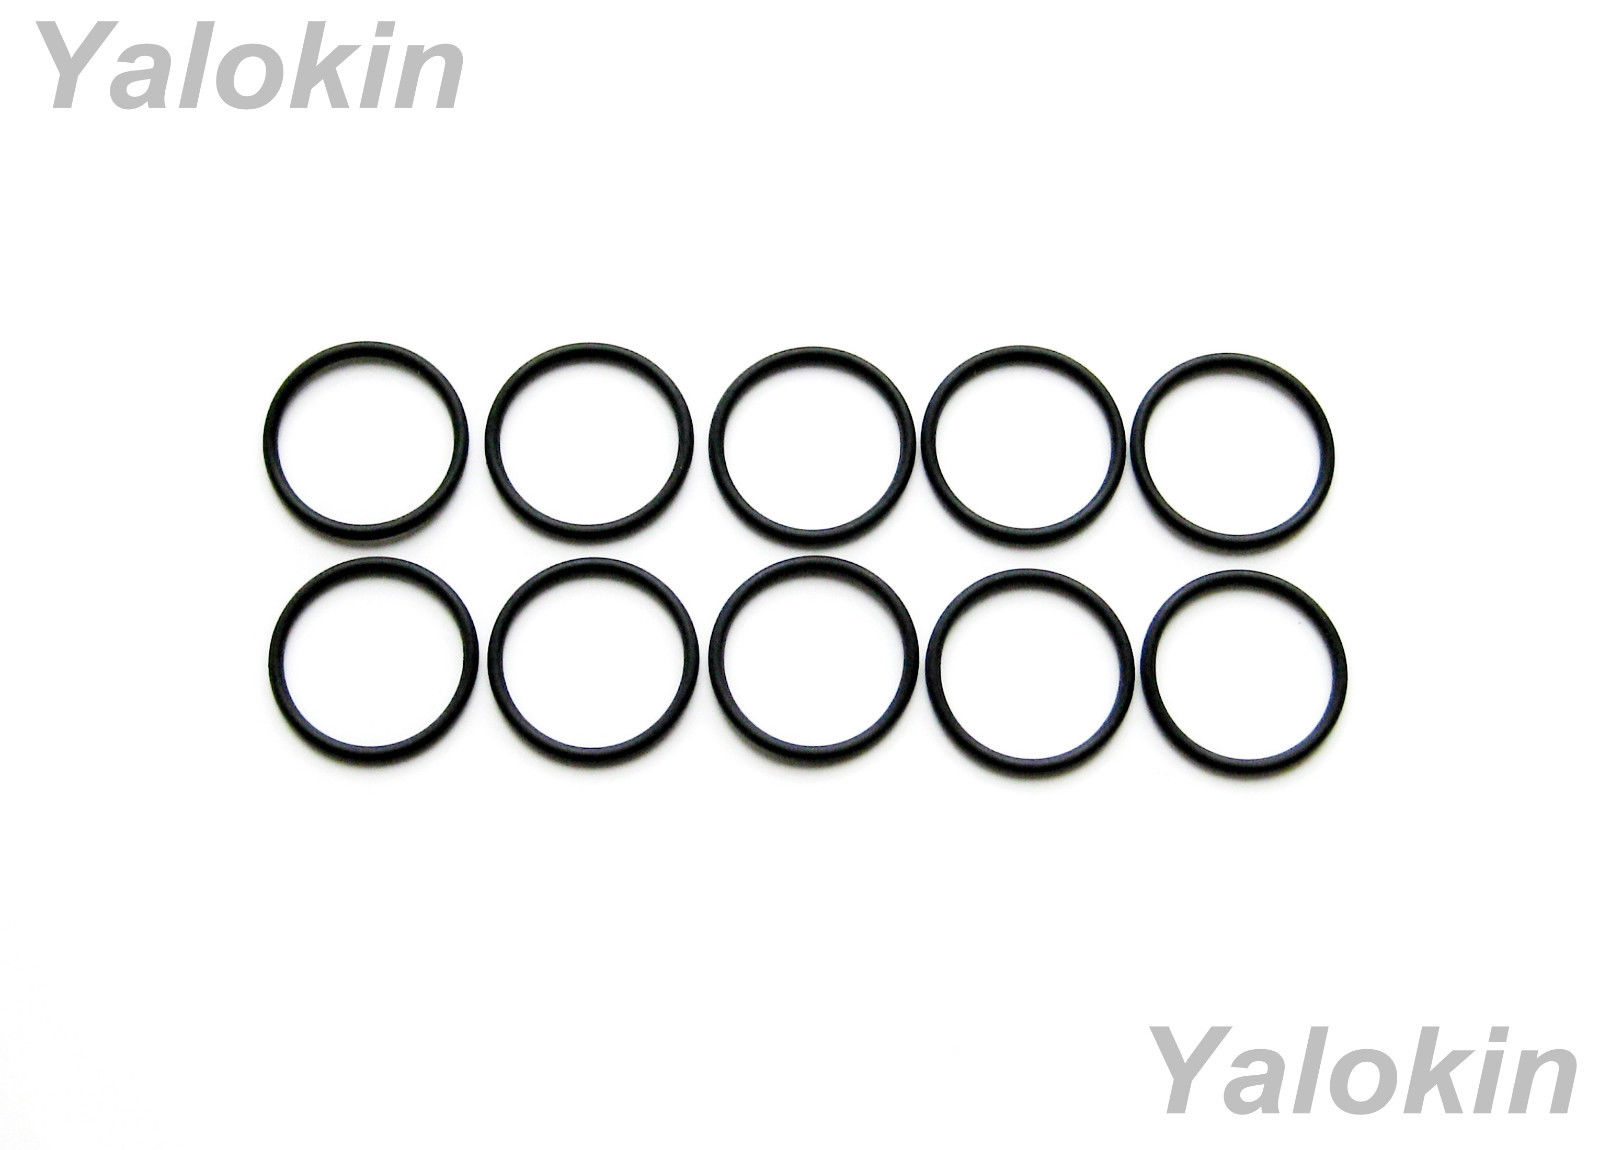 10 Pcs Replacement O Rings Set For Apvs Rda Rba Drip Tips And Mods Earphones Accessories